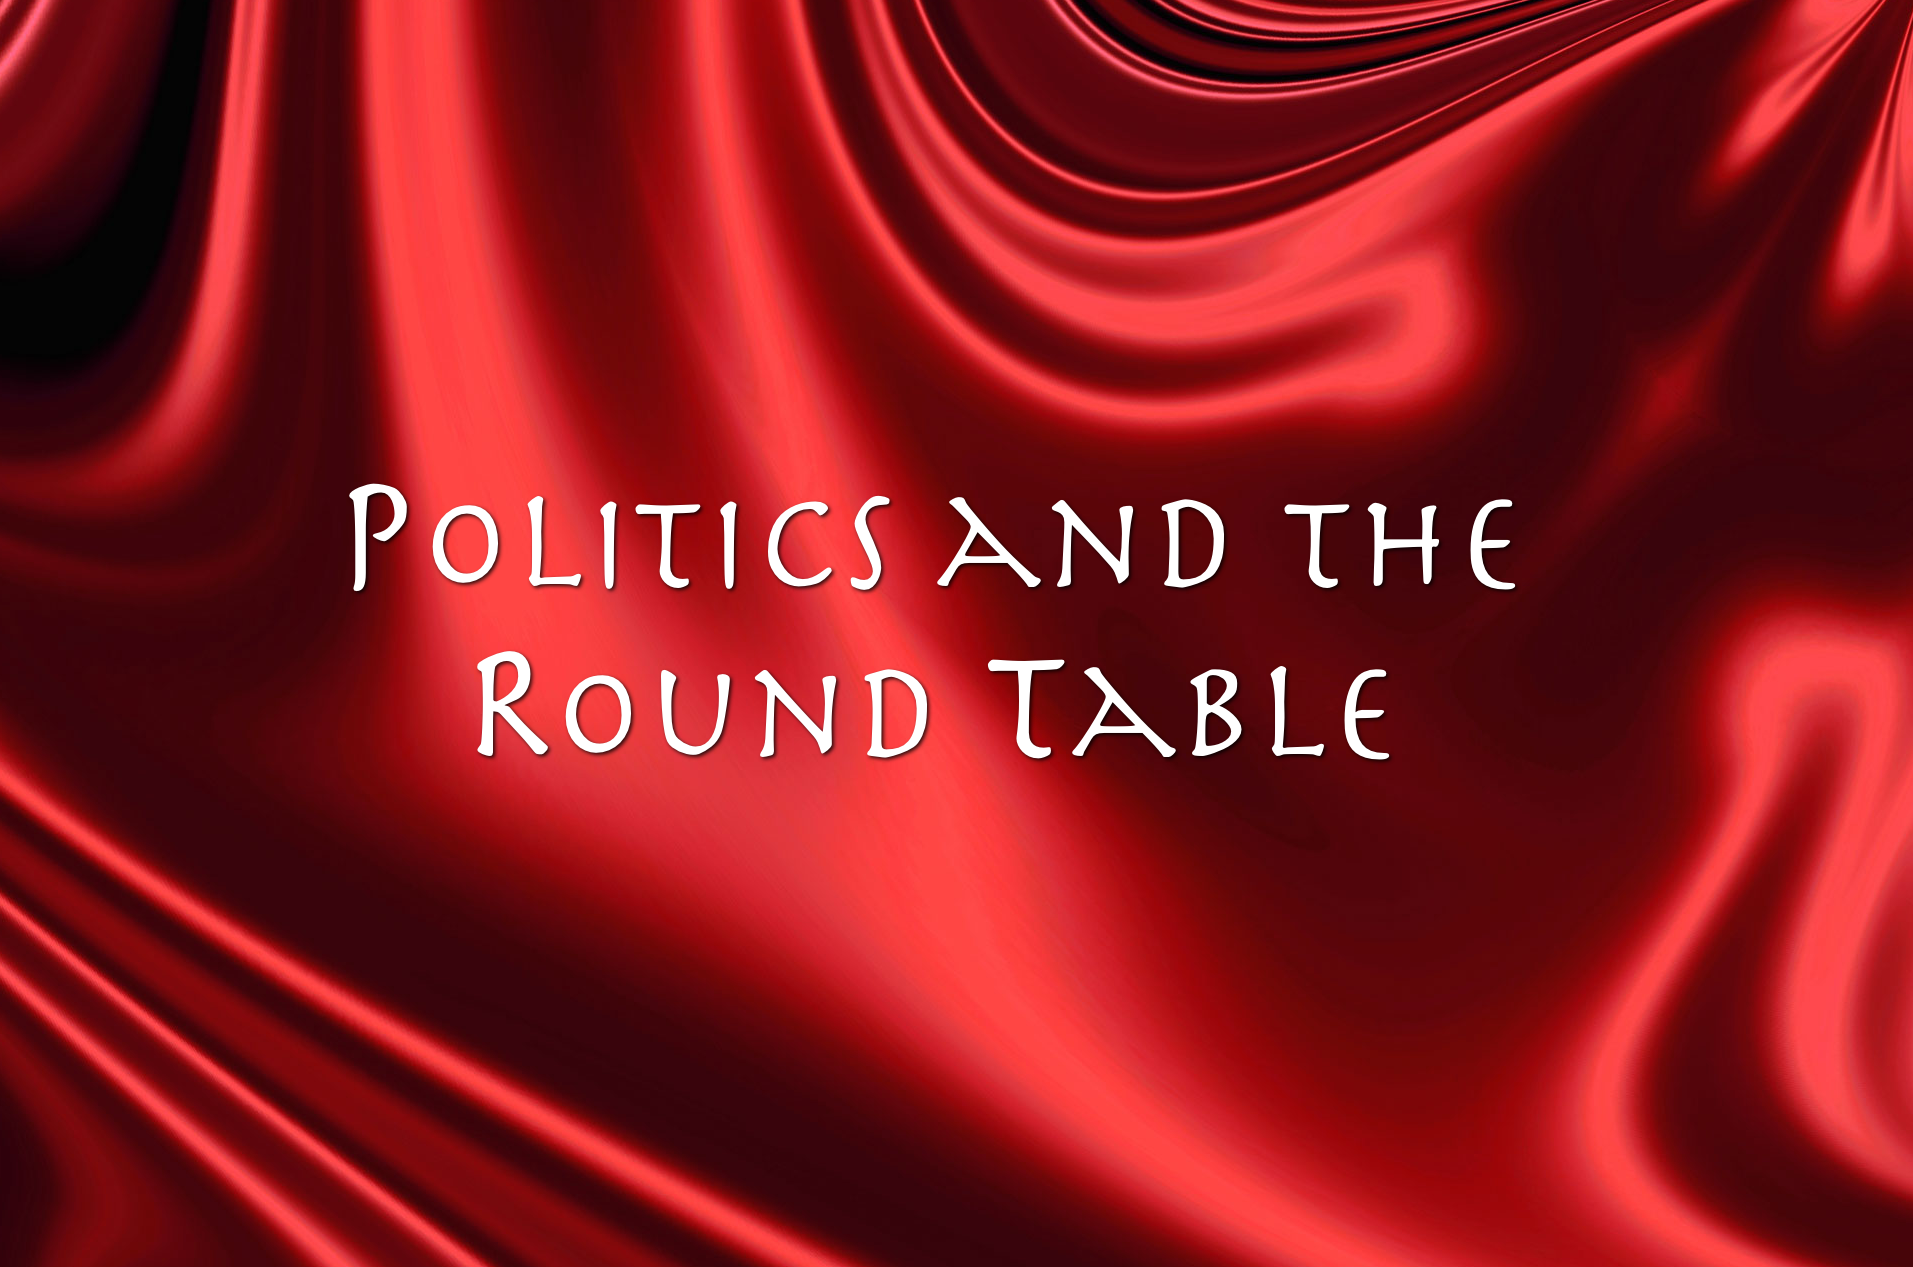 Politics and the Round Table